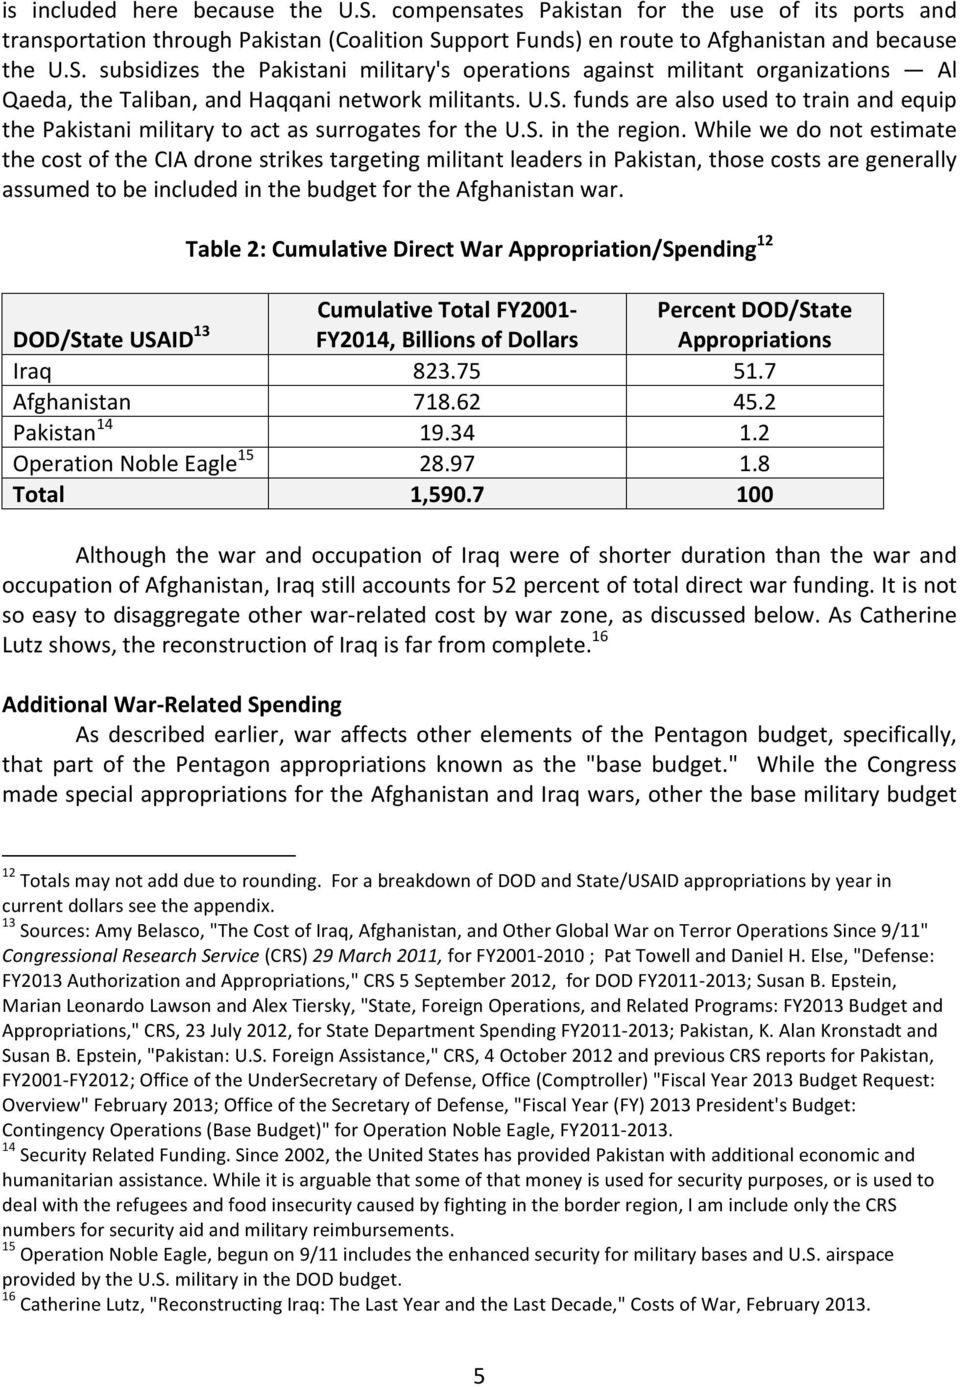 While we do not estimate the cost of the CIA drone strikes targeting militant leaders in Pakistan, those costs are generally assumed to be included in the budget for the Afghanistan war.